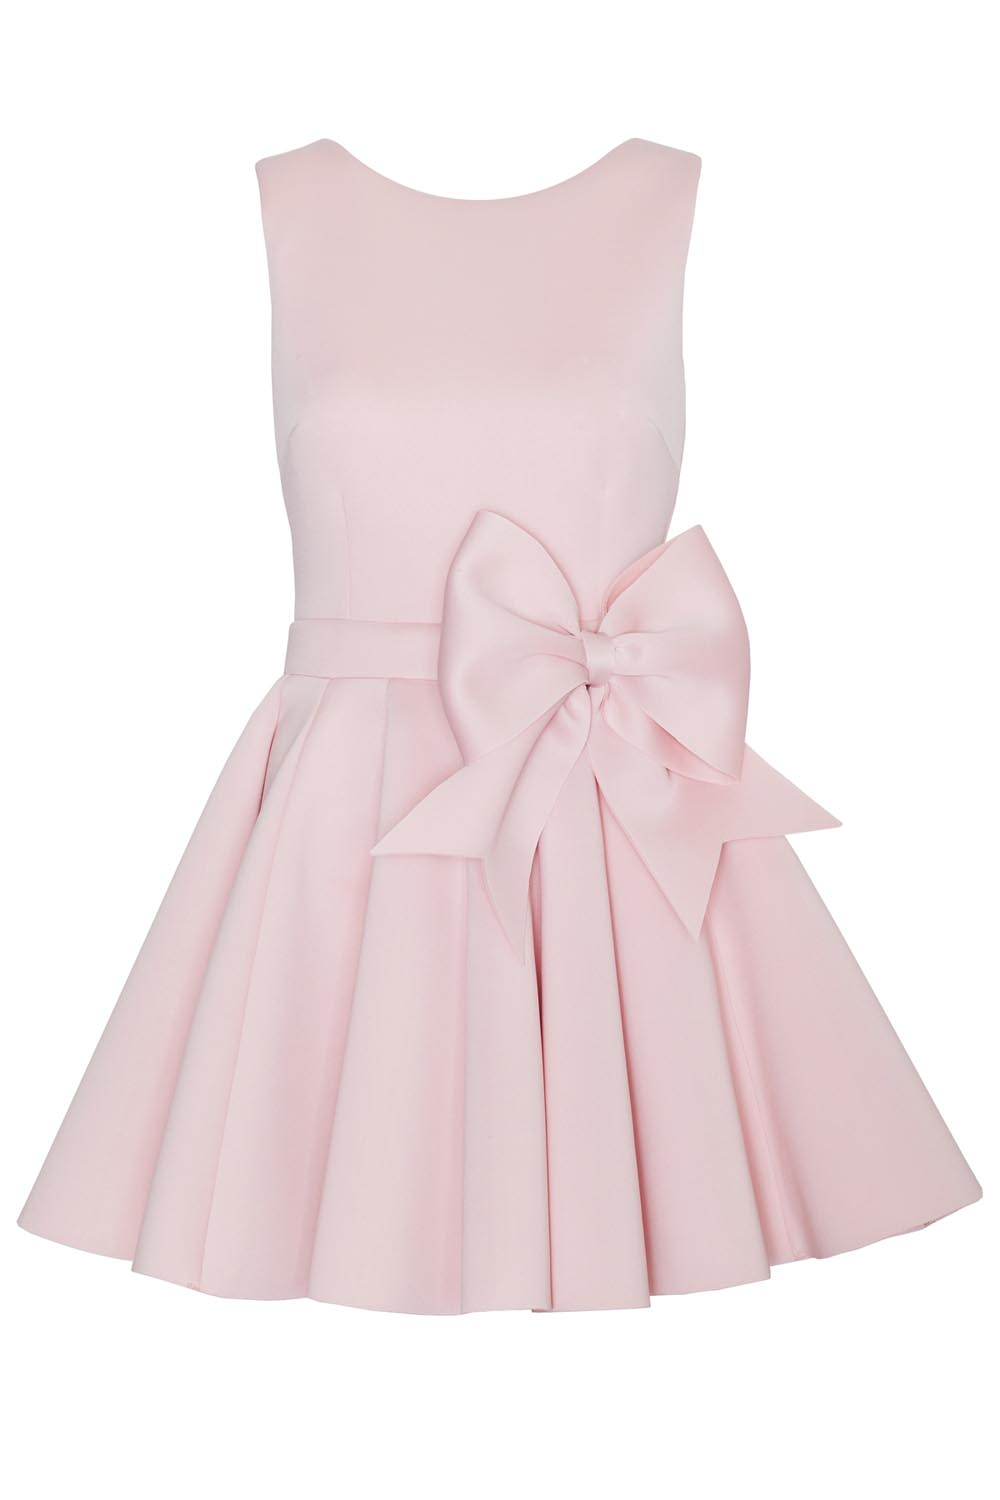 pink pleated dress with bow belt